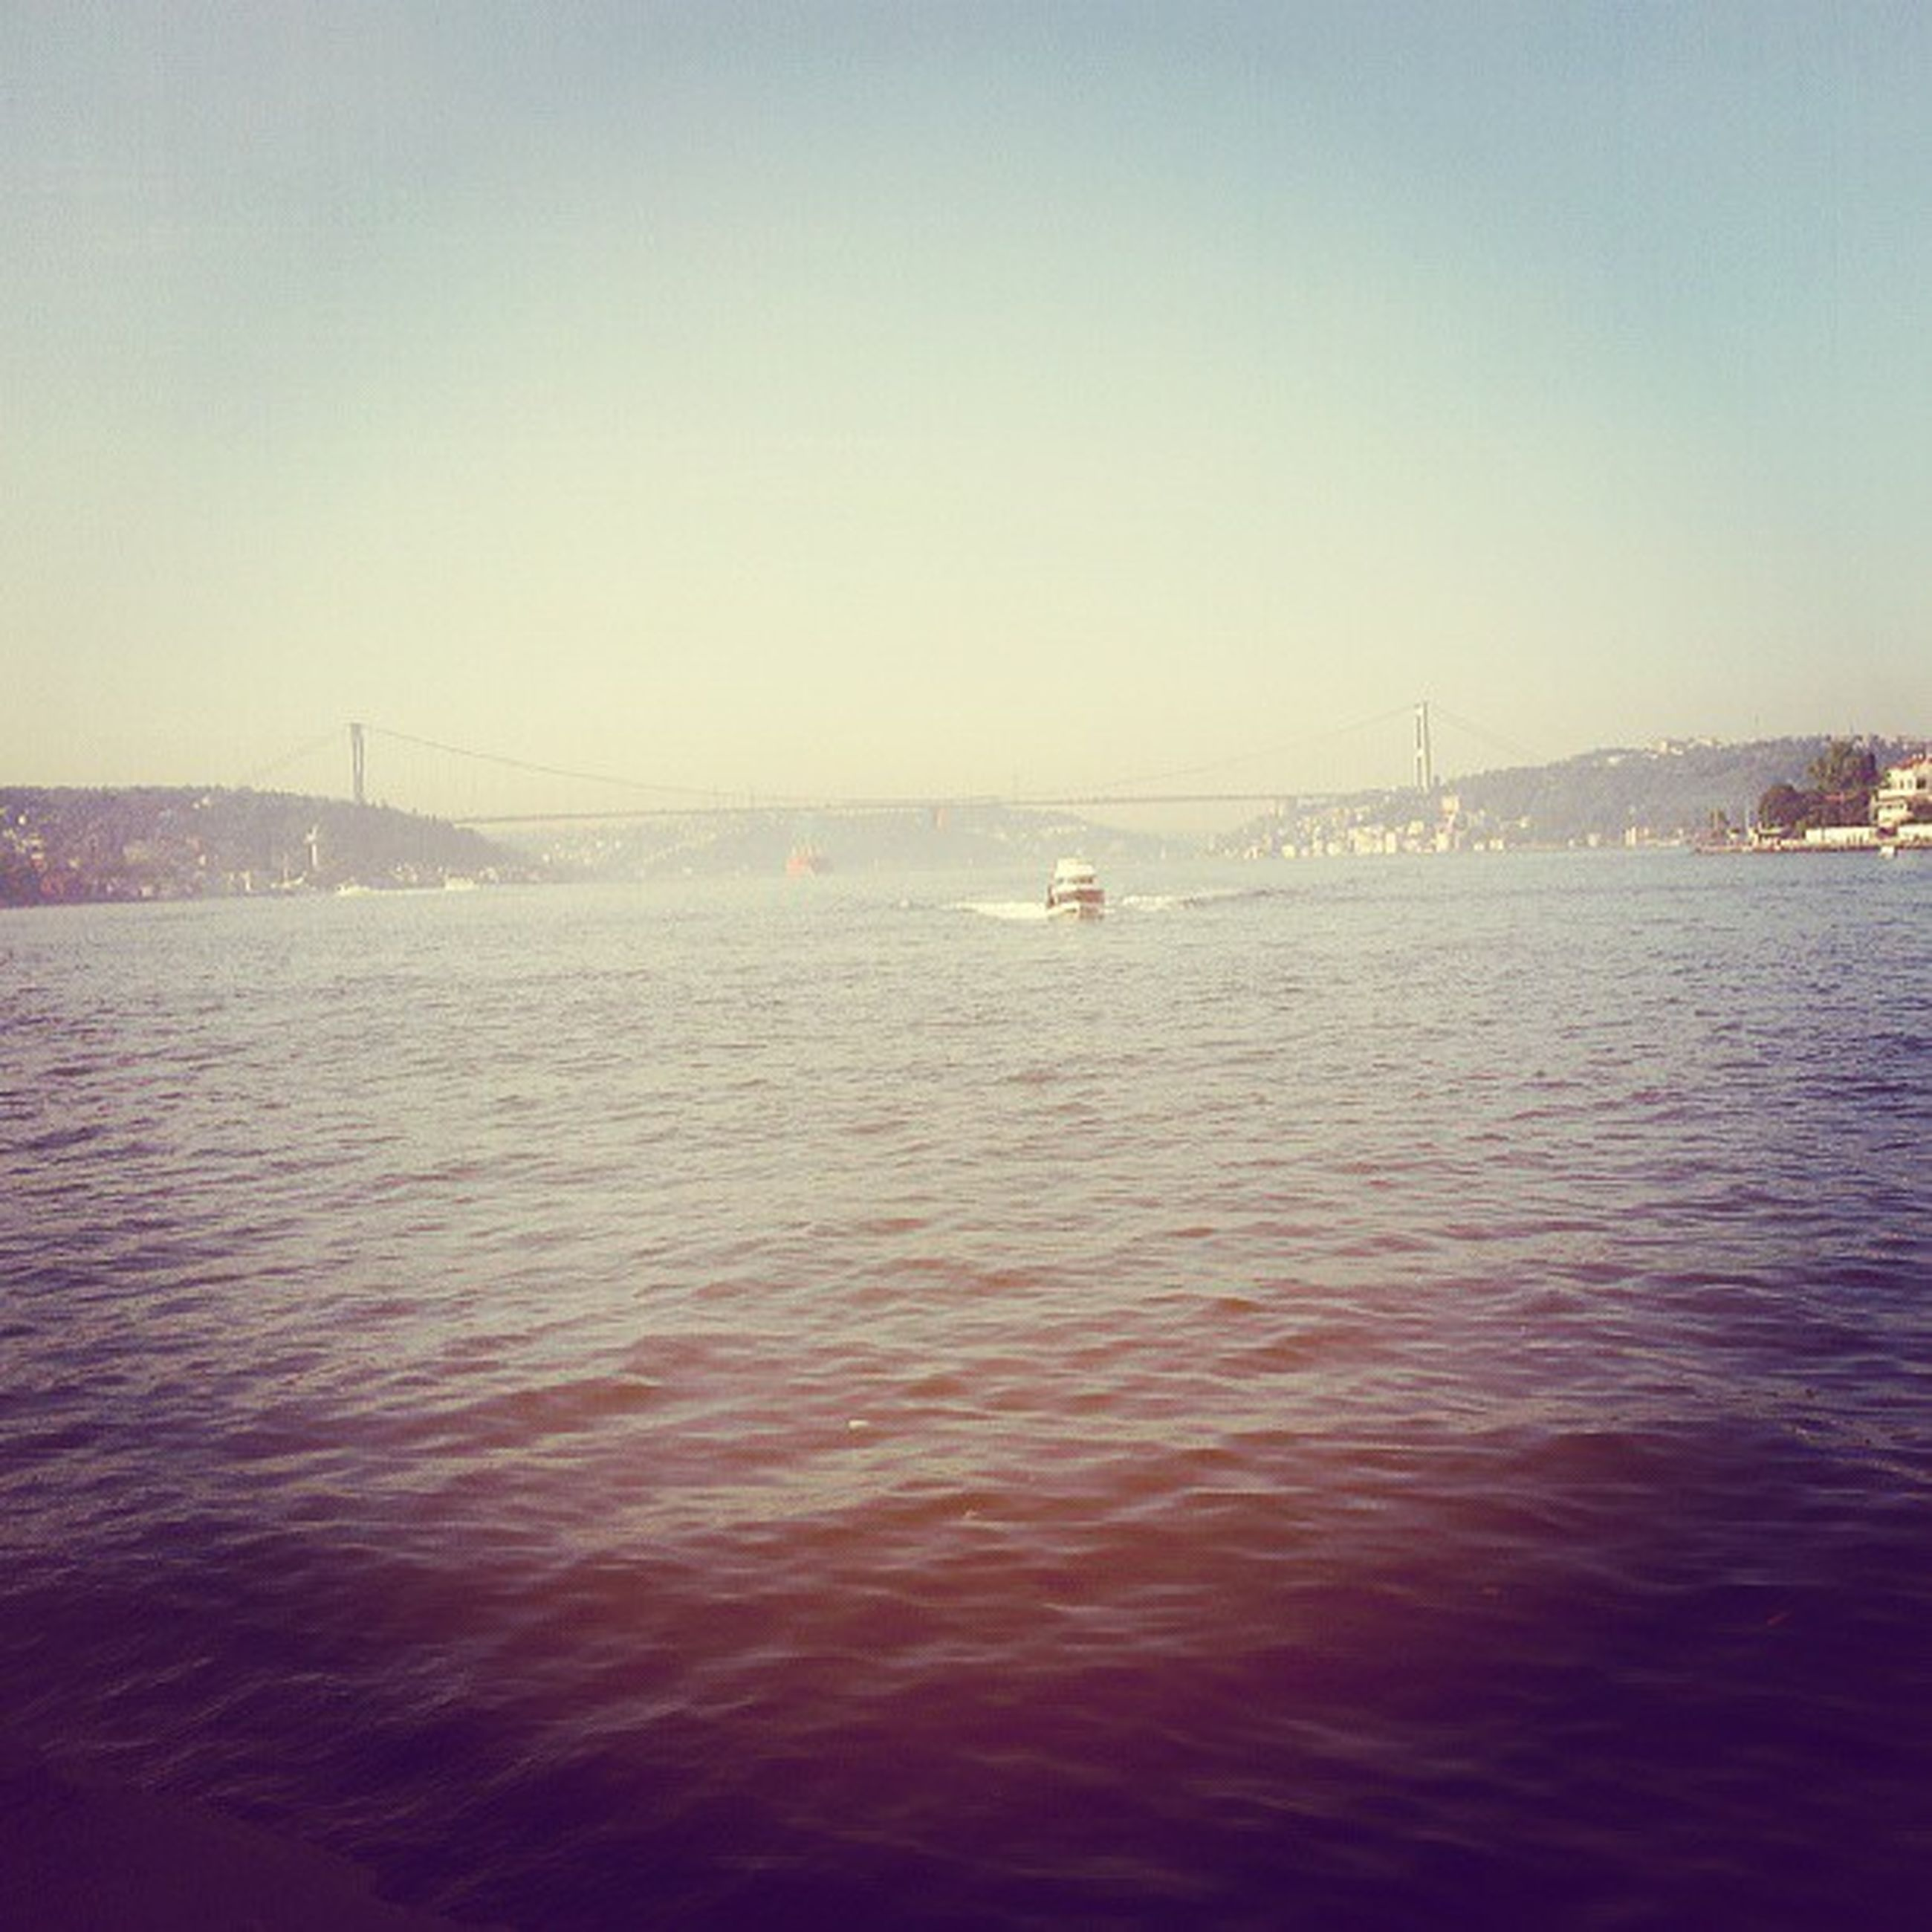 water, sea, waterfront, clear sky, transportation, built structure, copy space, architecture, connection, nautical vessel, bridge - man made structure, rippled, river, tranquility, tranquil scene, nature, scenics, engineering, beauty in nature, sky